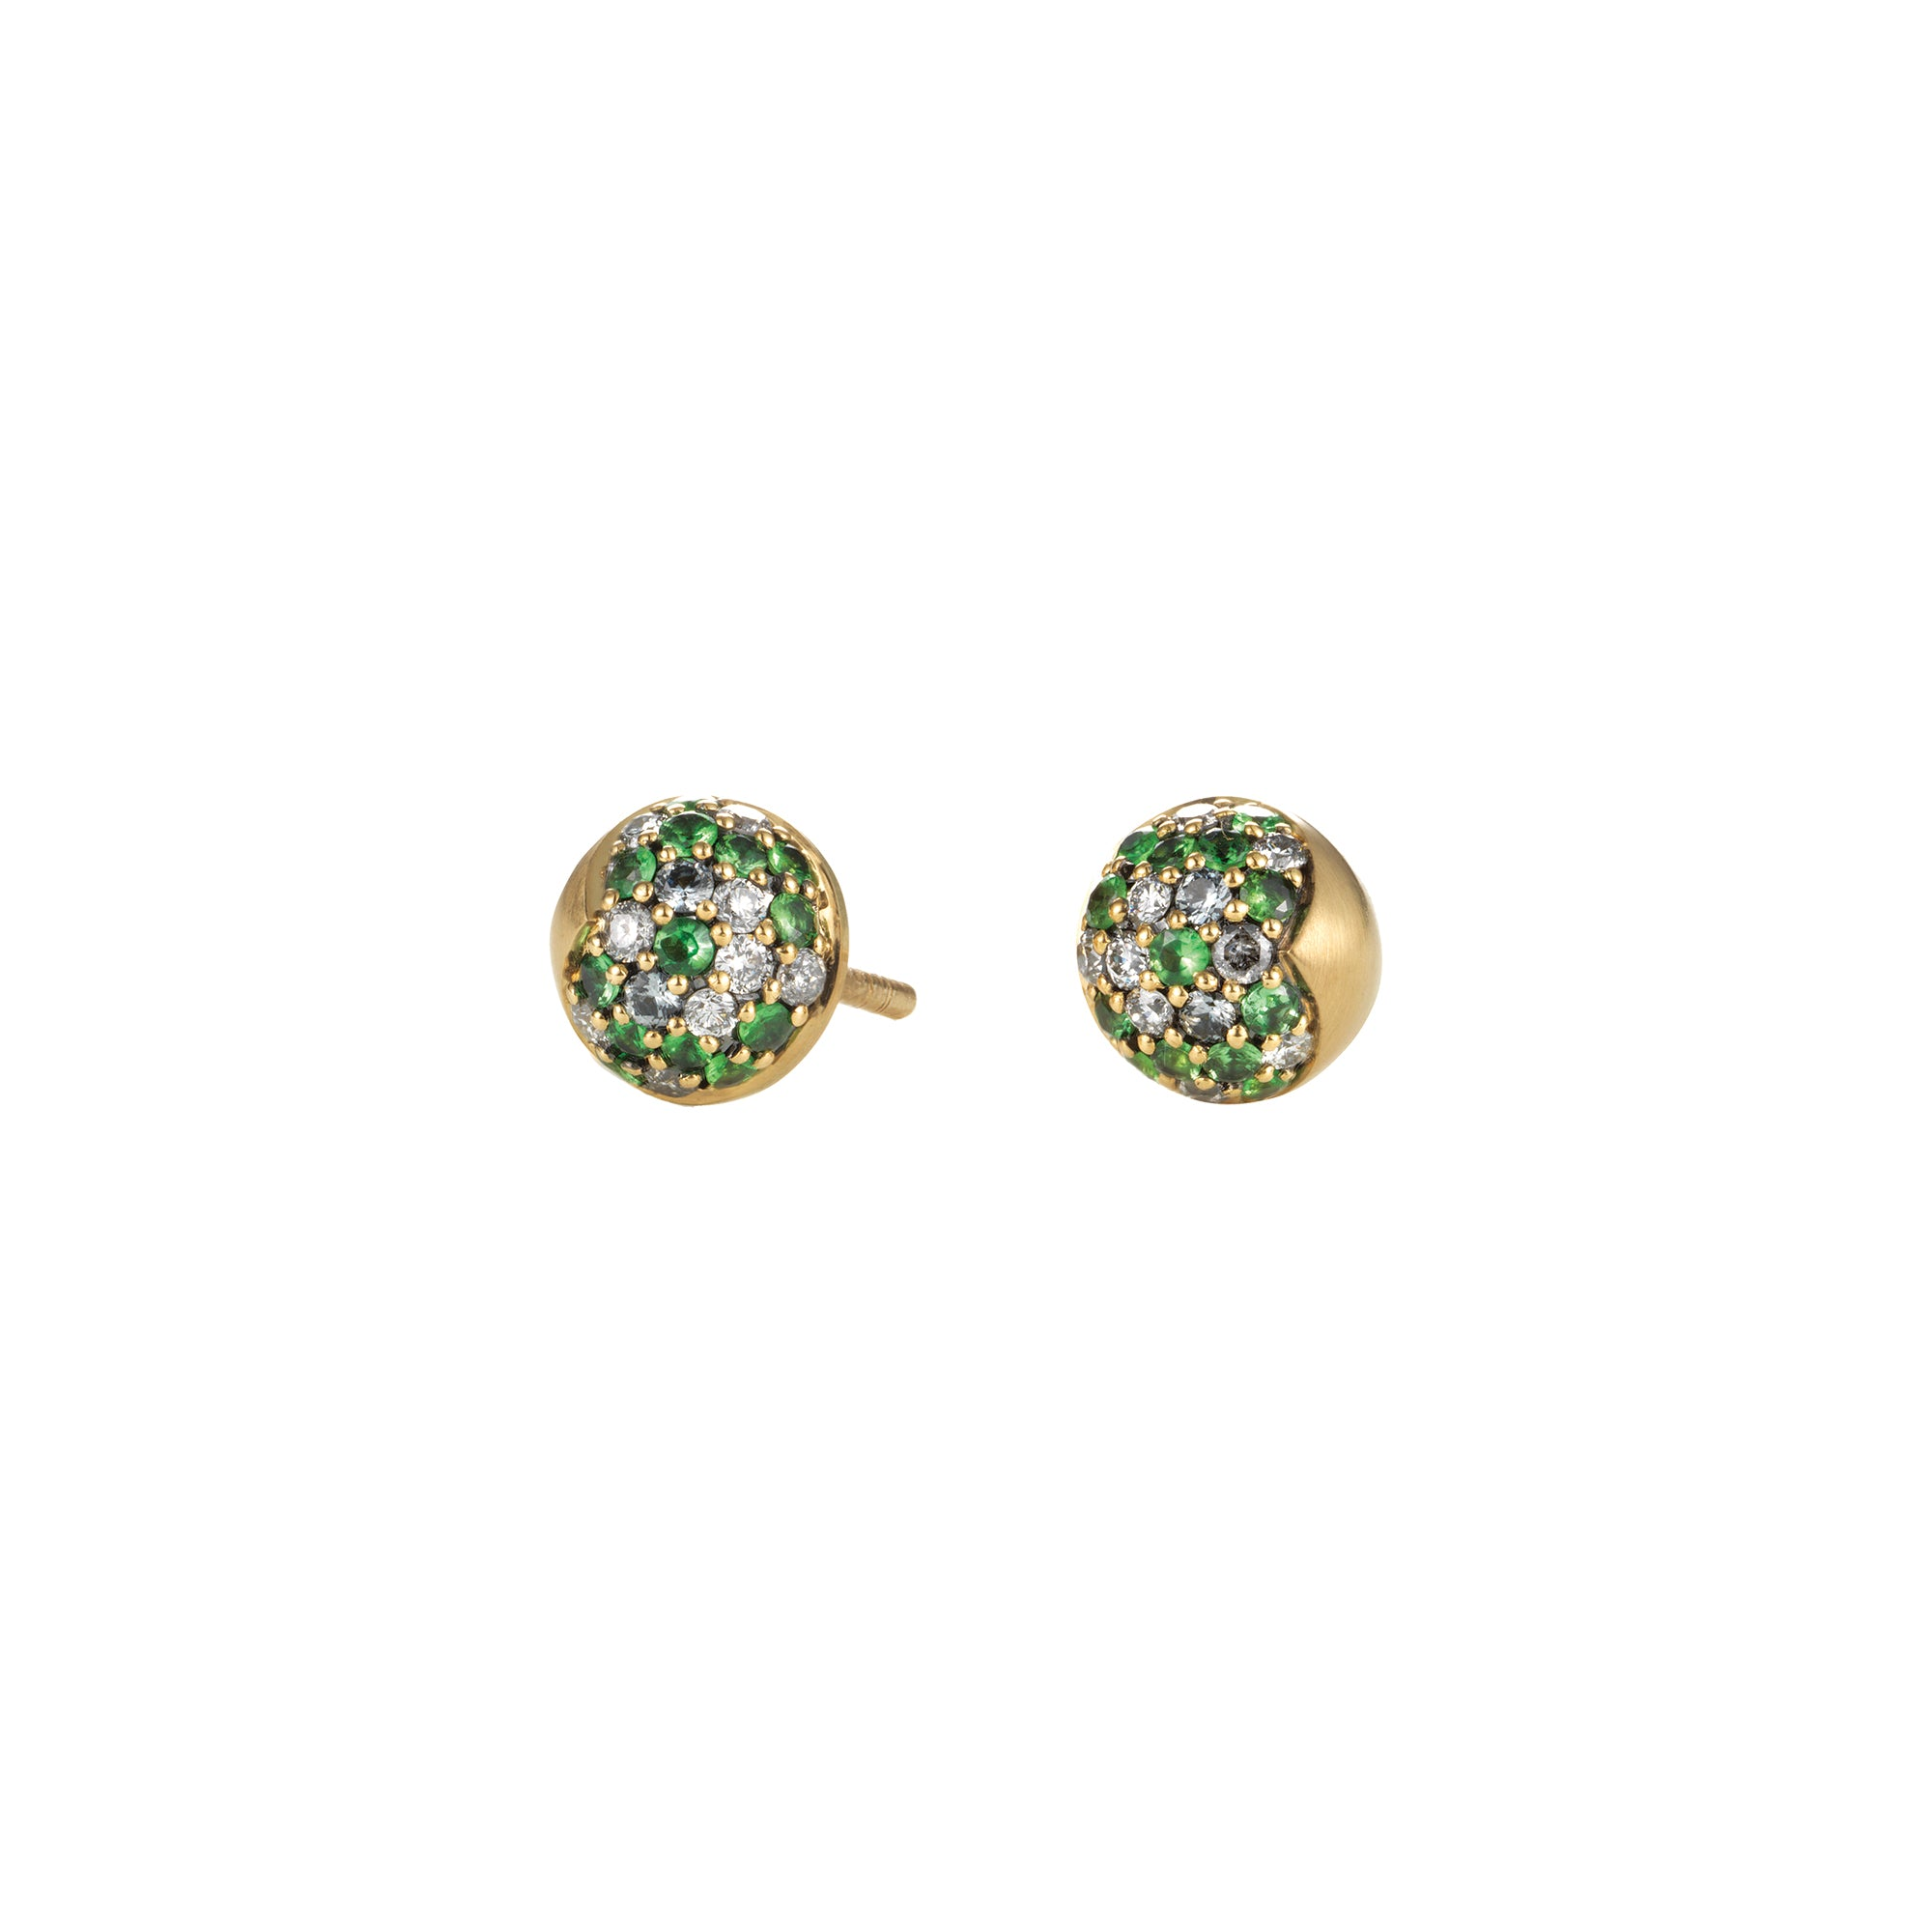 Gold Tsavorite Diamond Half Dome Pave Studs by Anahita for Broken English Jewelry